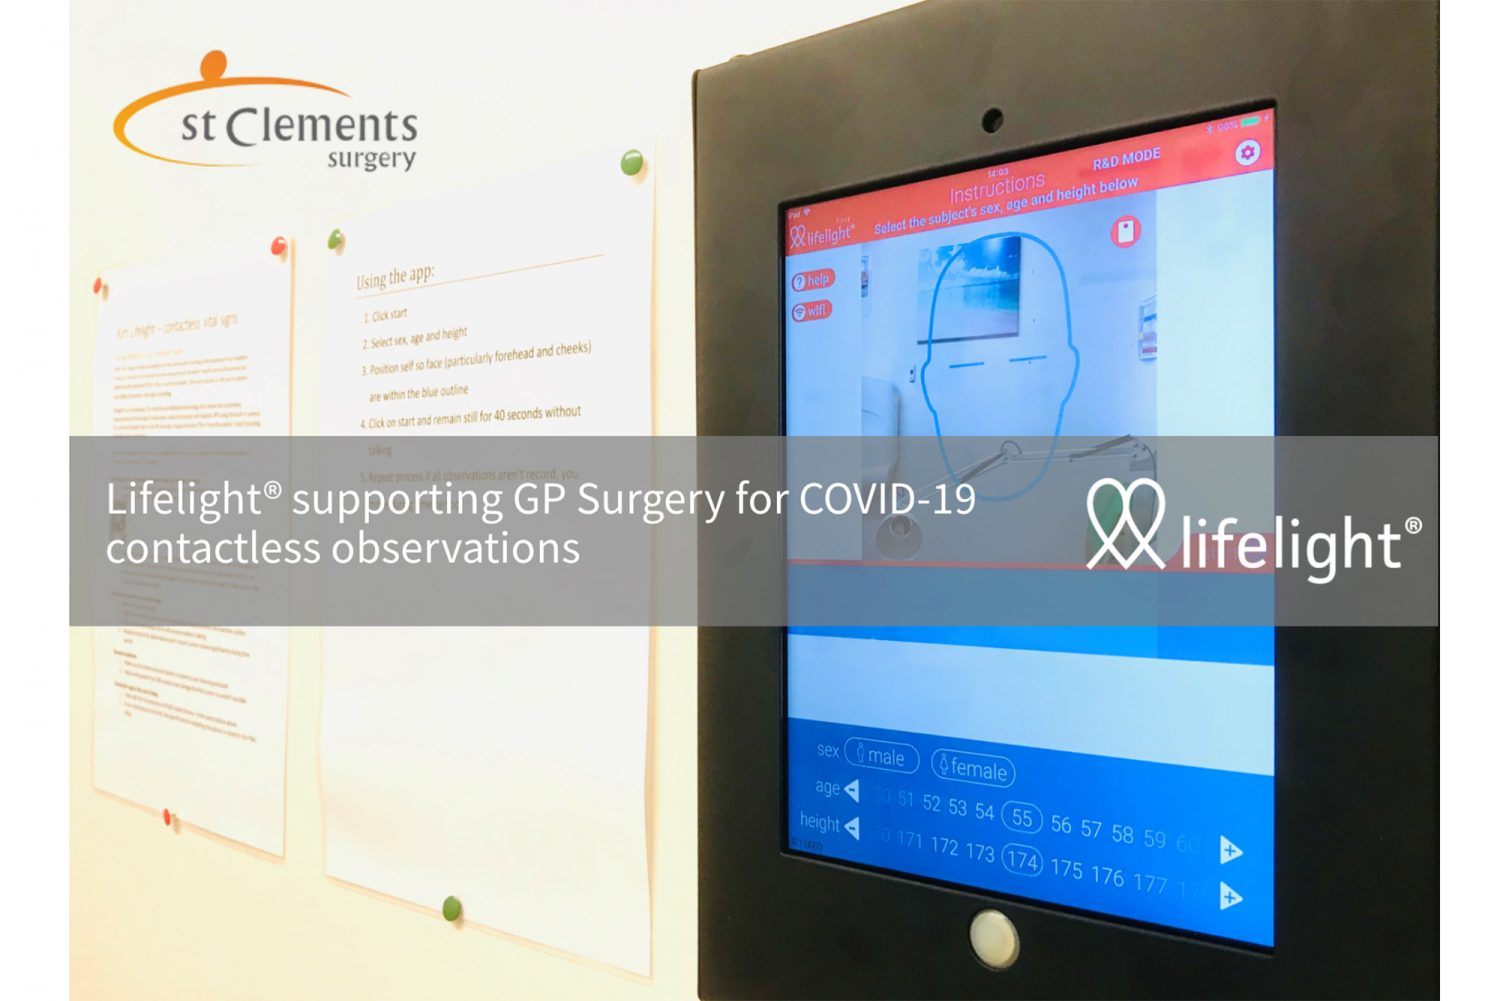 Lifelight supporting contactless GP observations during COVID-19